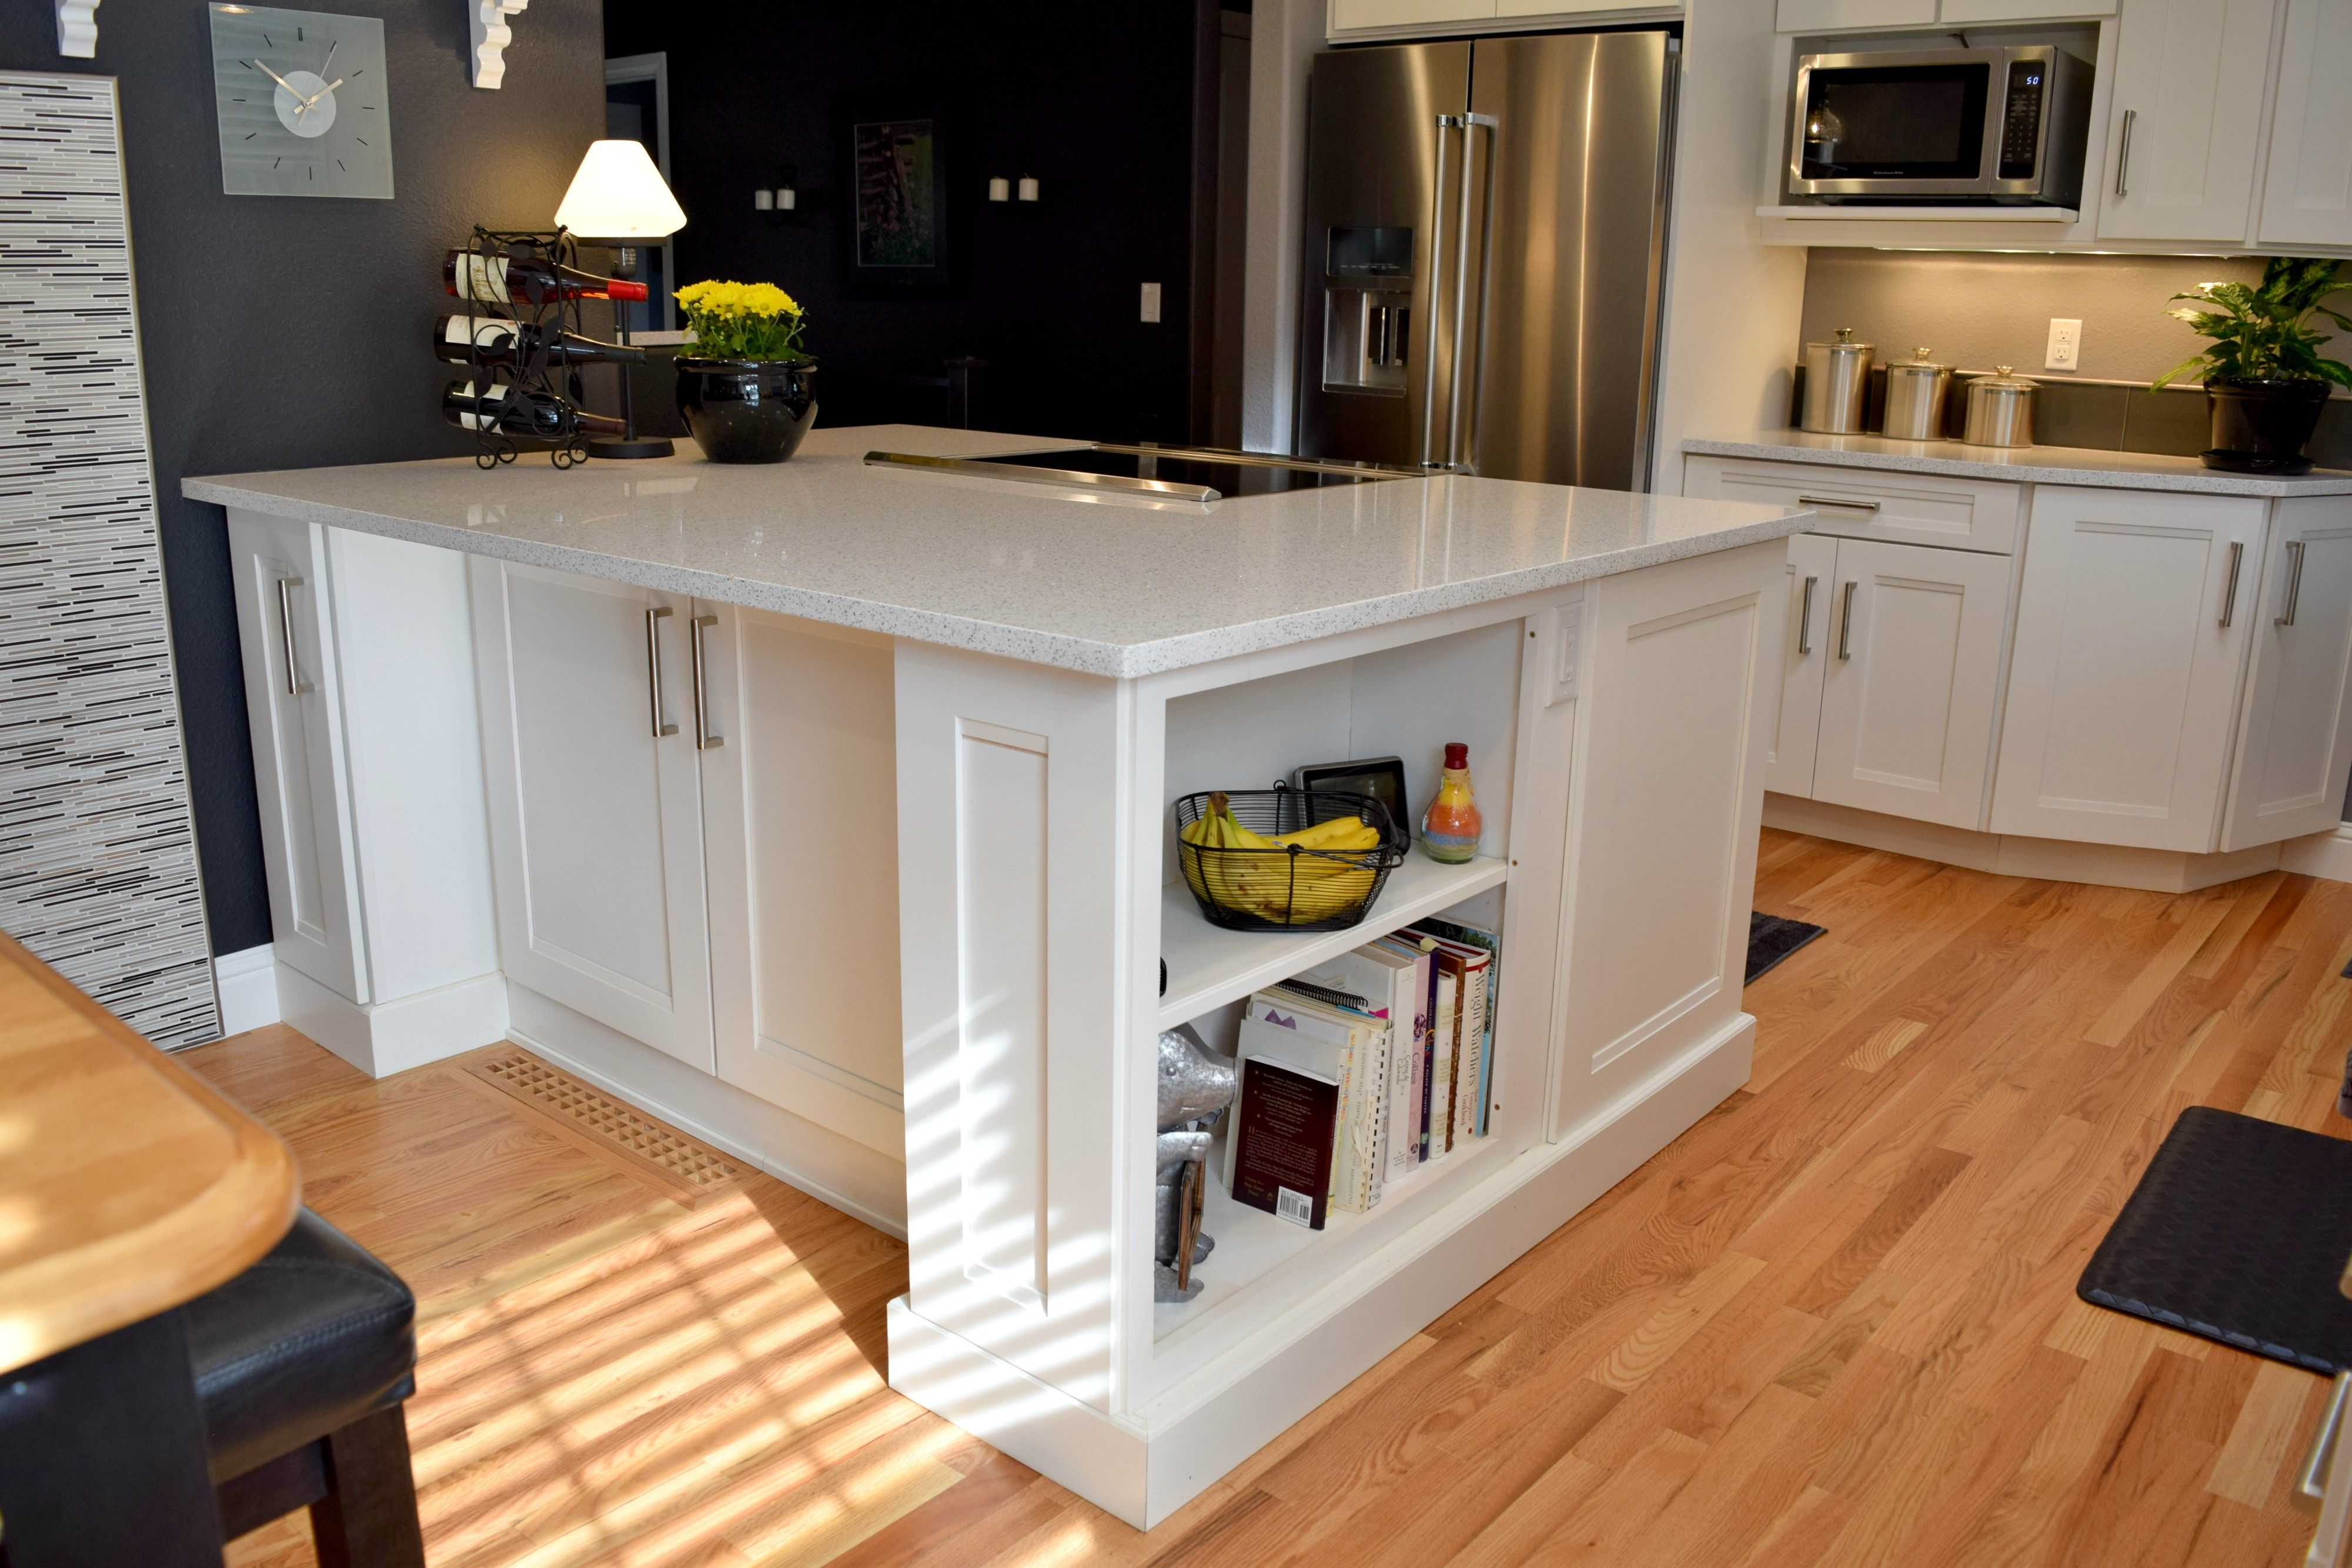 BKC Kitchen and Bath - Mid Continent Cabinetry, Pacifica ...